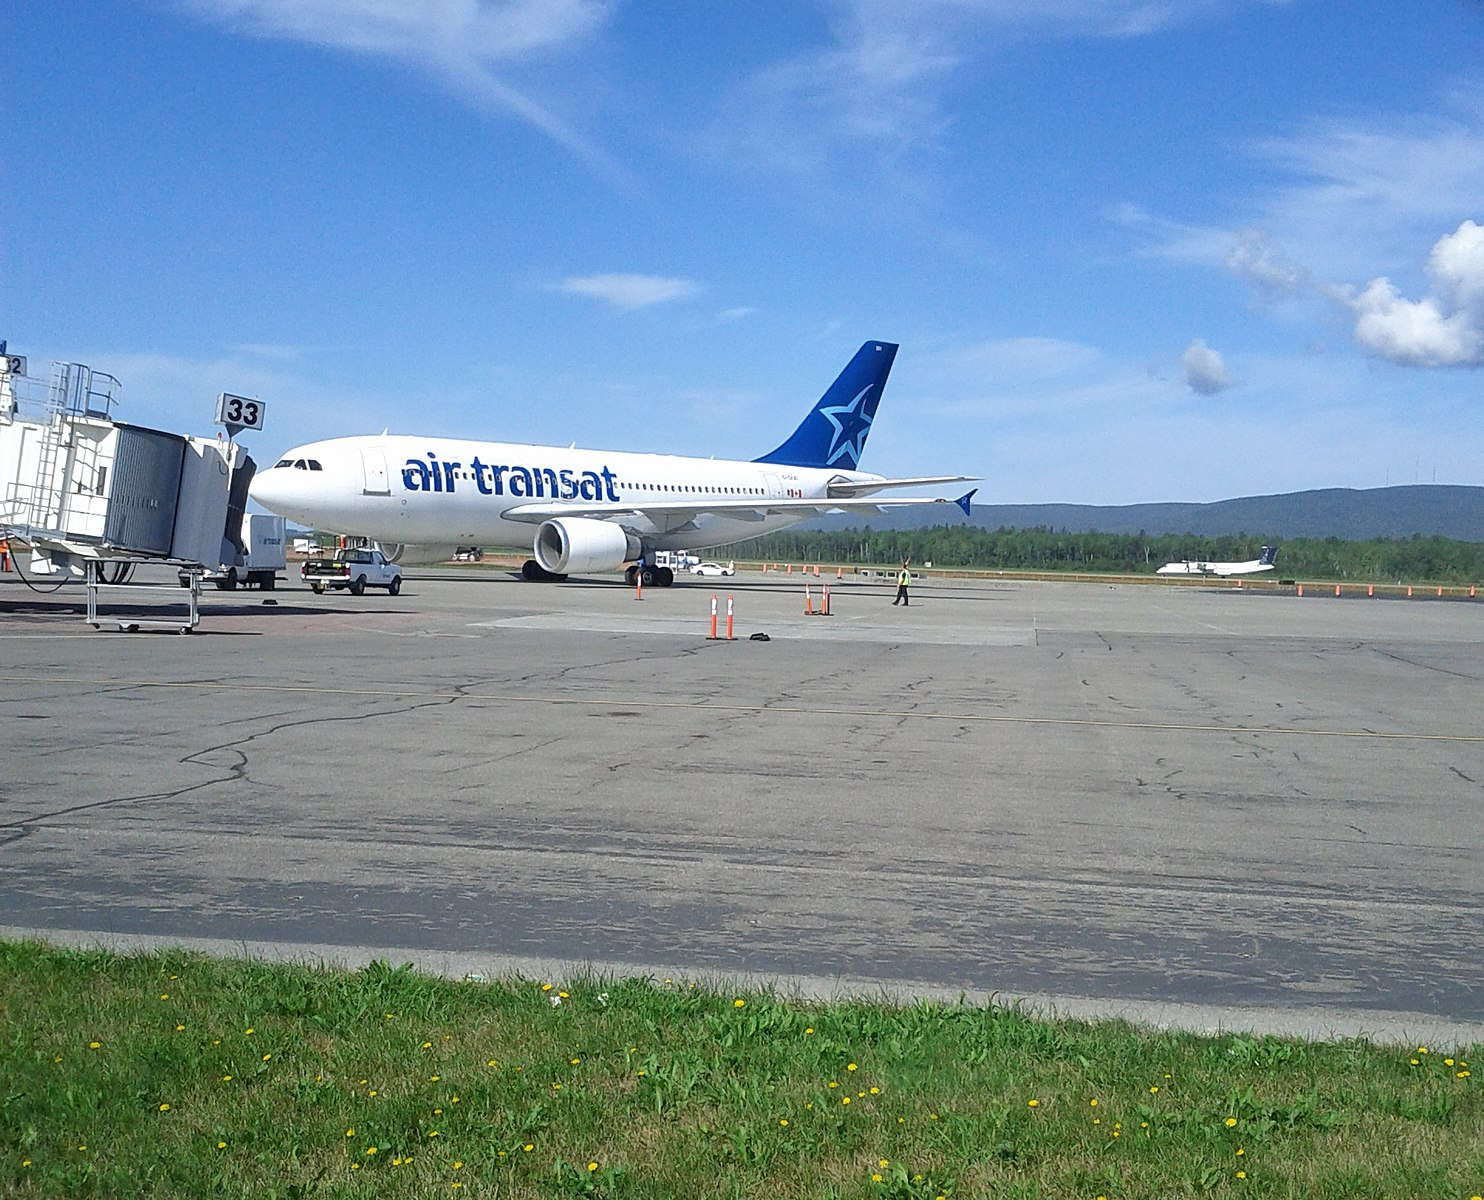 YQB Airport is a hub for Air Transat.